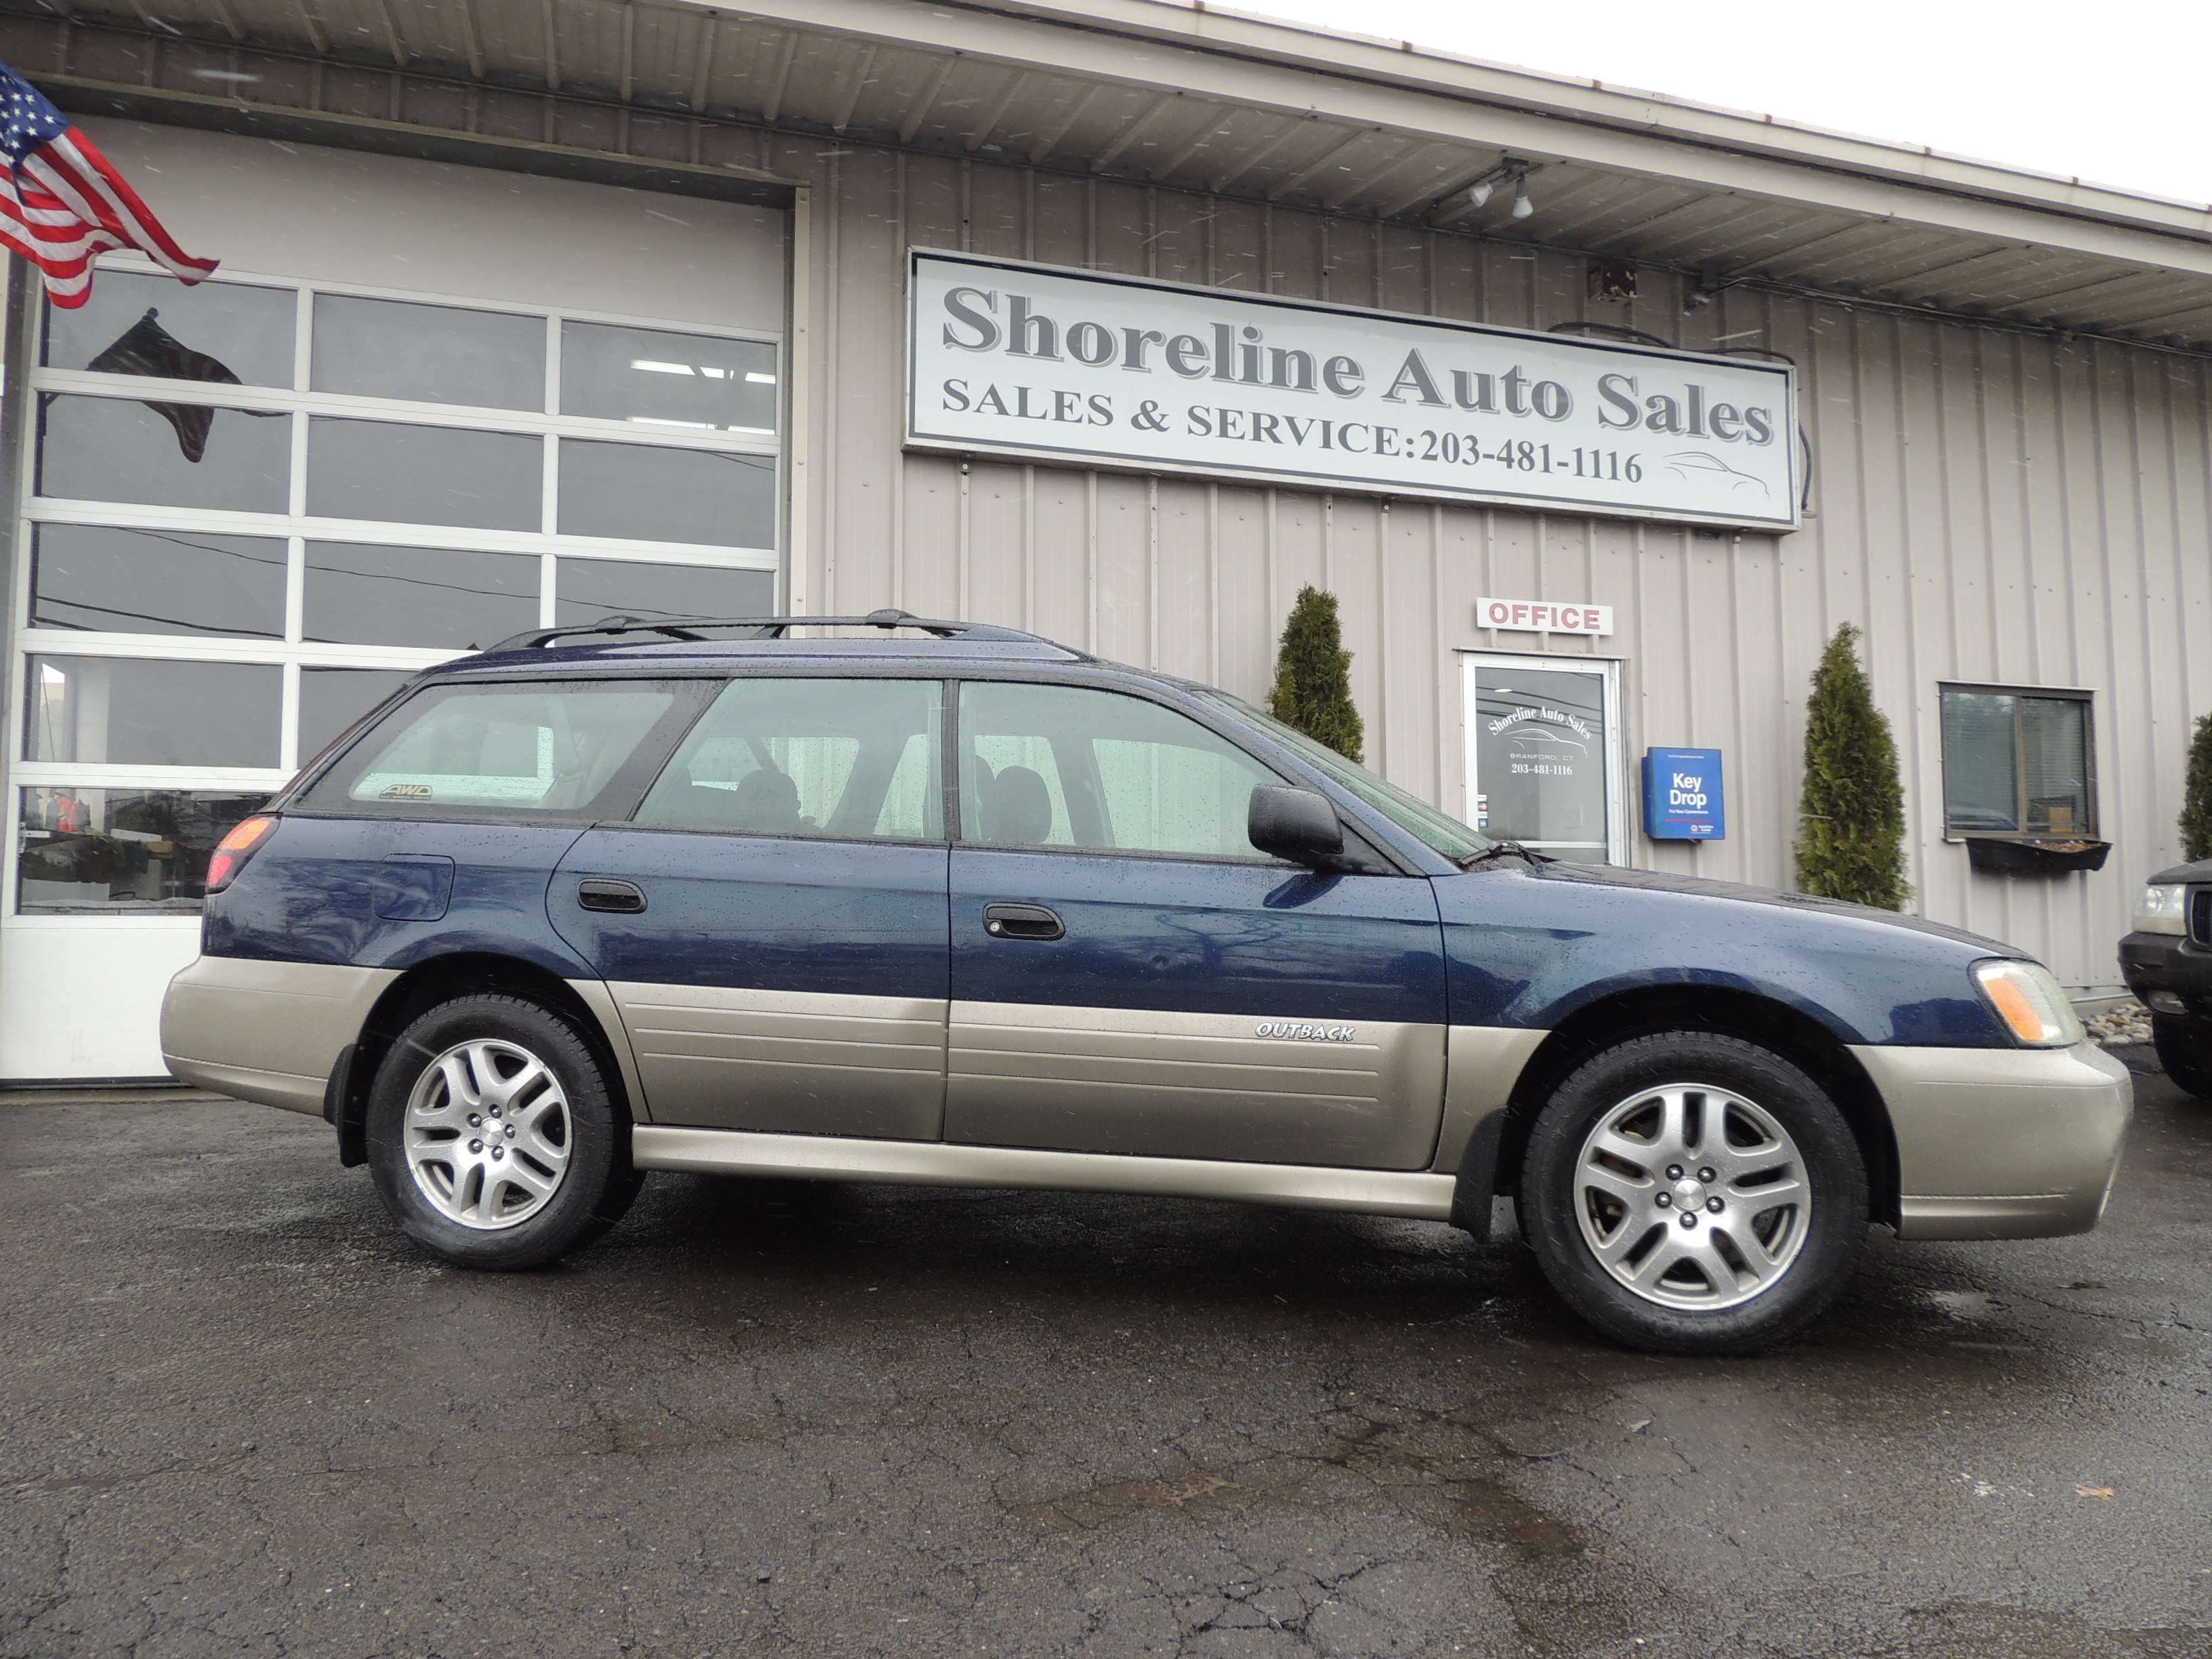 2004 subaru outback 5 speed manual shoreline auto sales previousnext features overview new arrival 2004 subaru outback vanachro Gallery